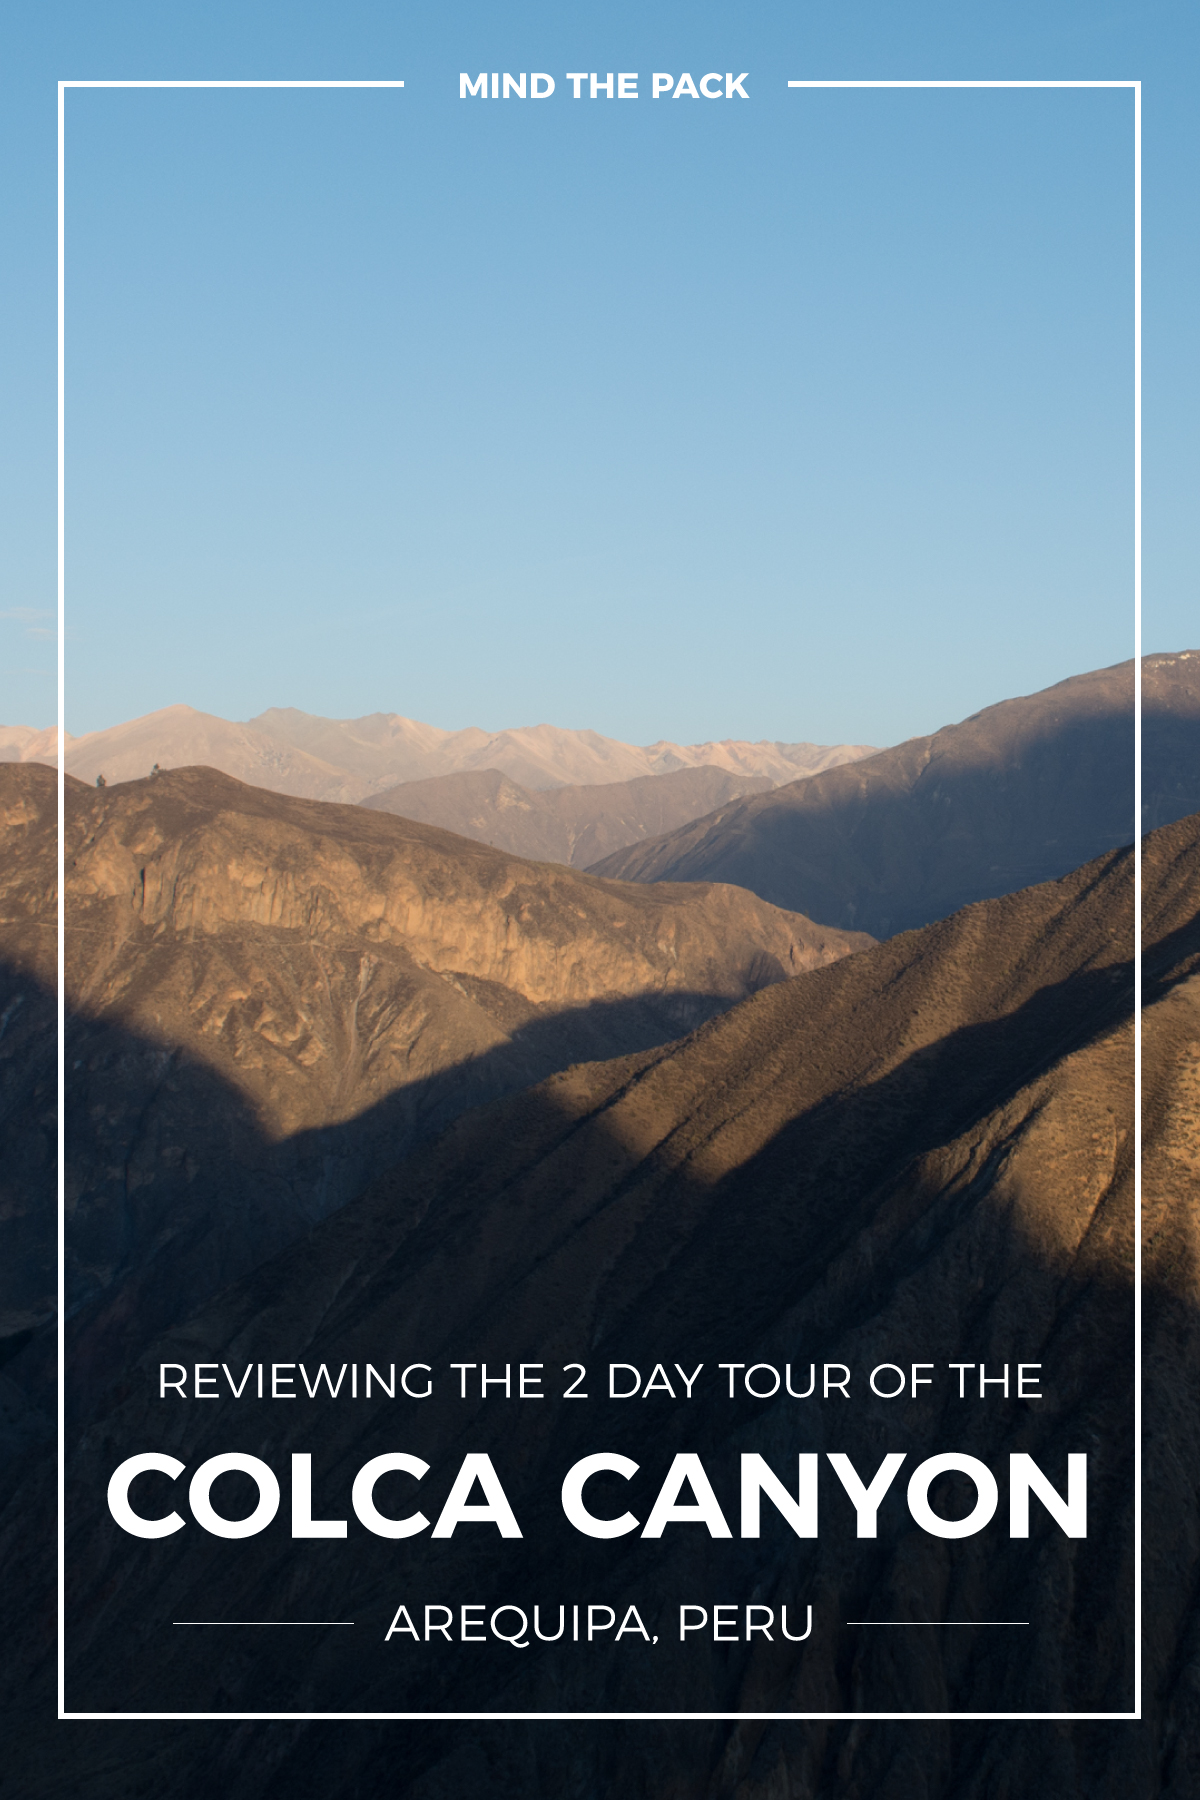 Colca-canyon-review.jpg